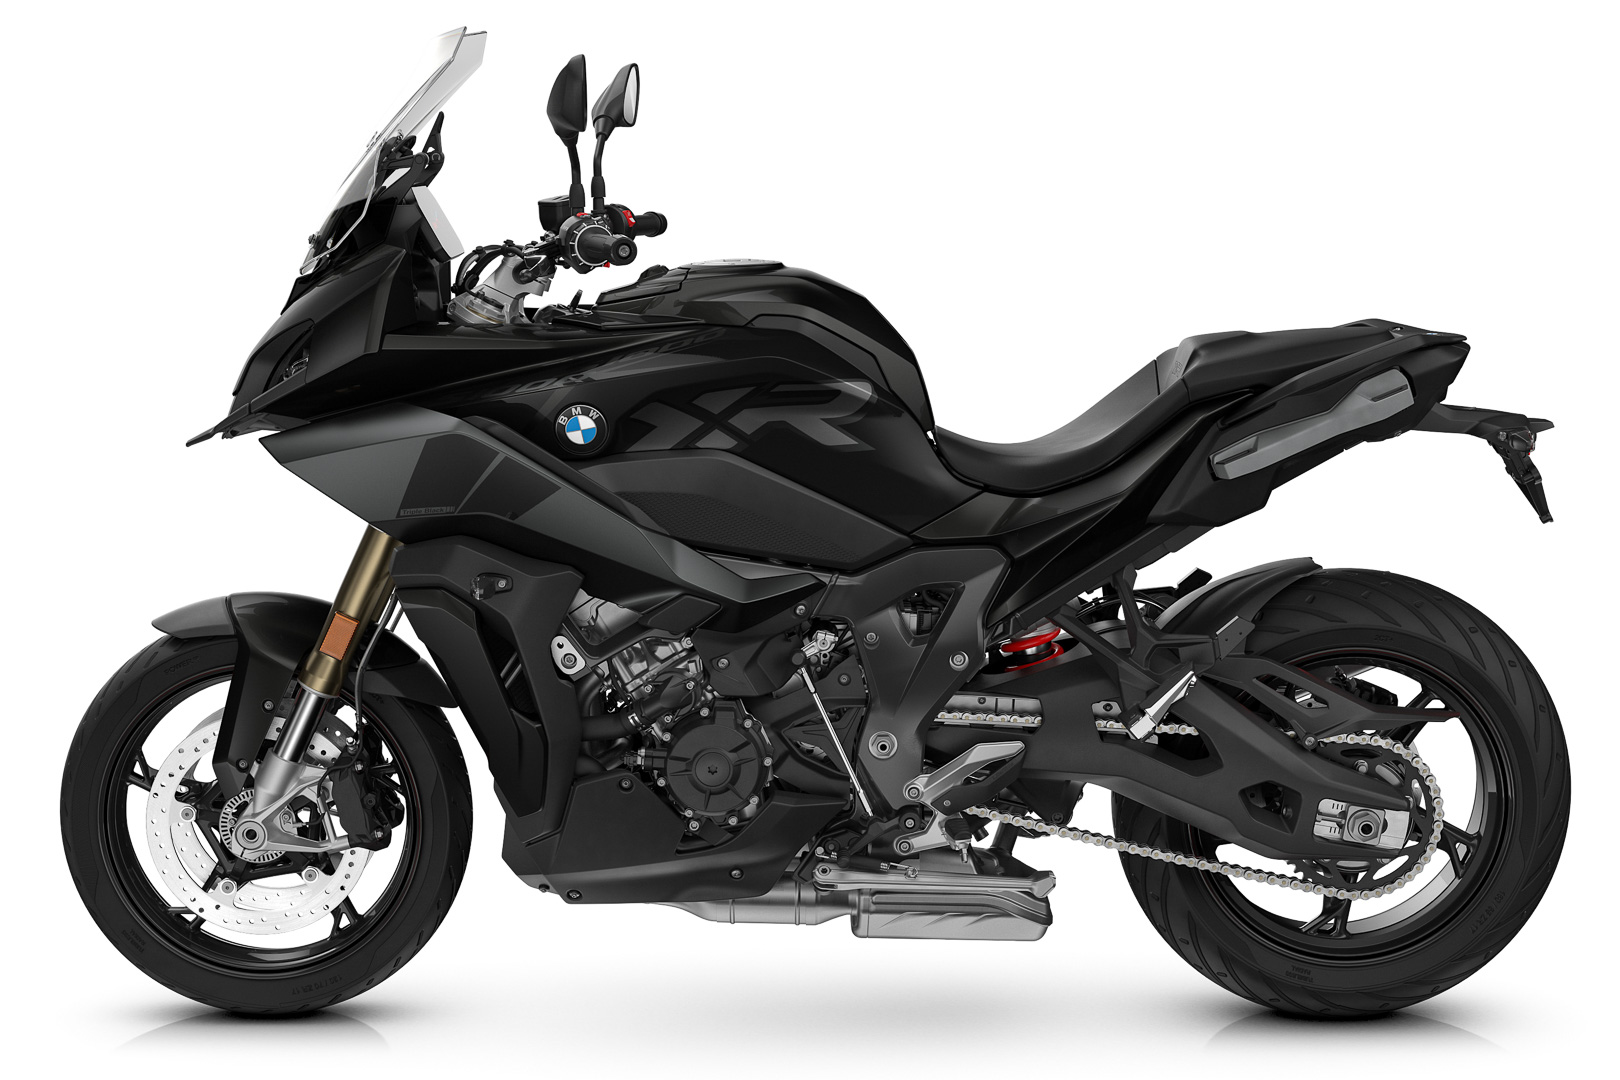 2022 BMW S 1000 XR First Look: MSRP and Photos